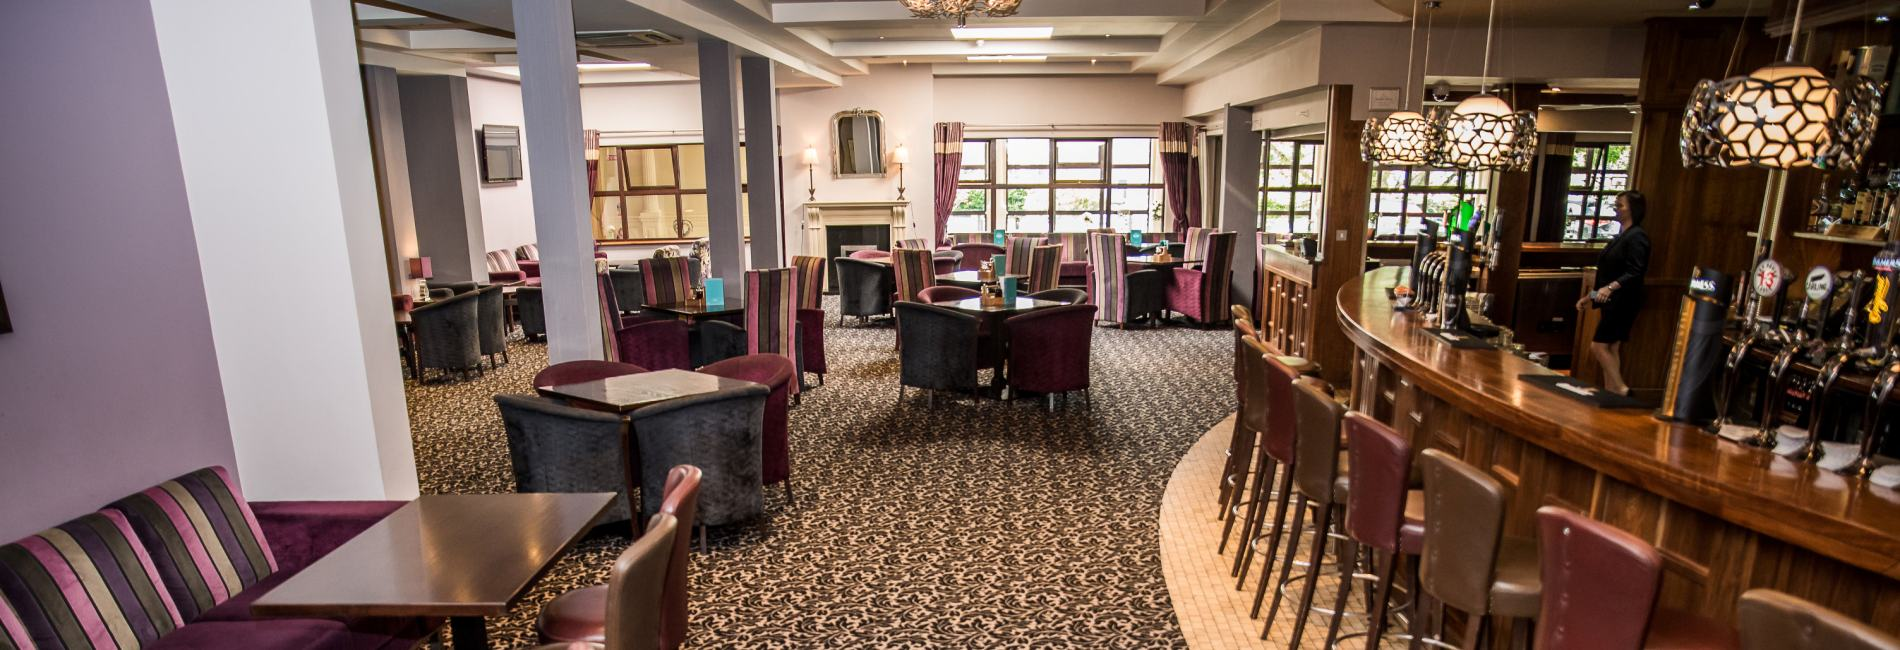 Arklow Bay Hotel lounge image